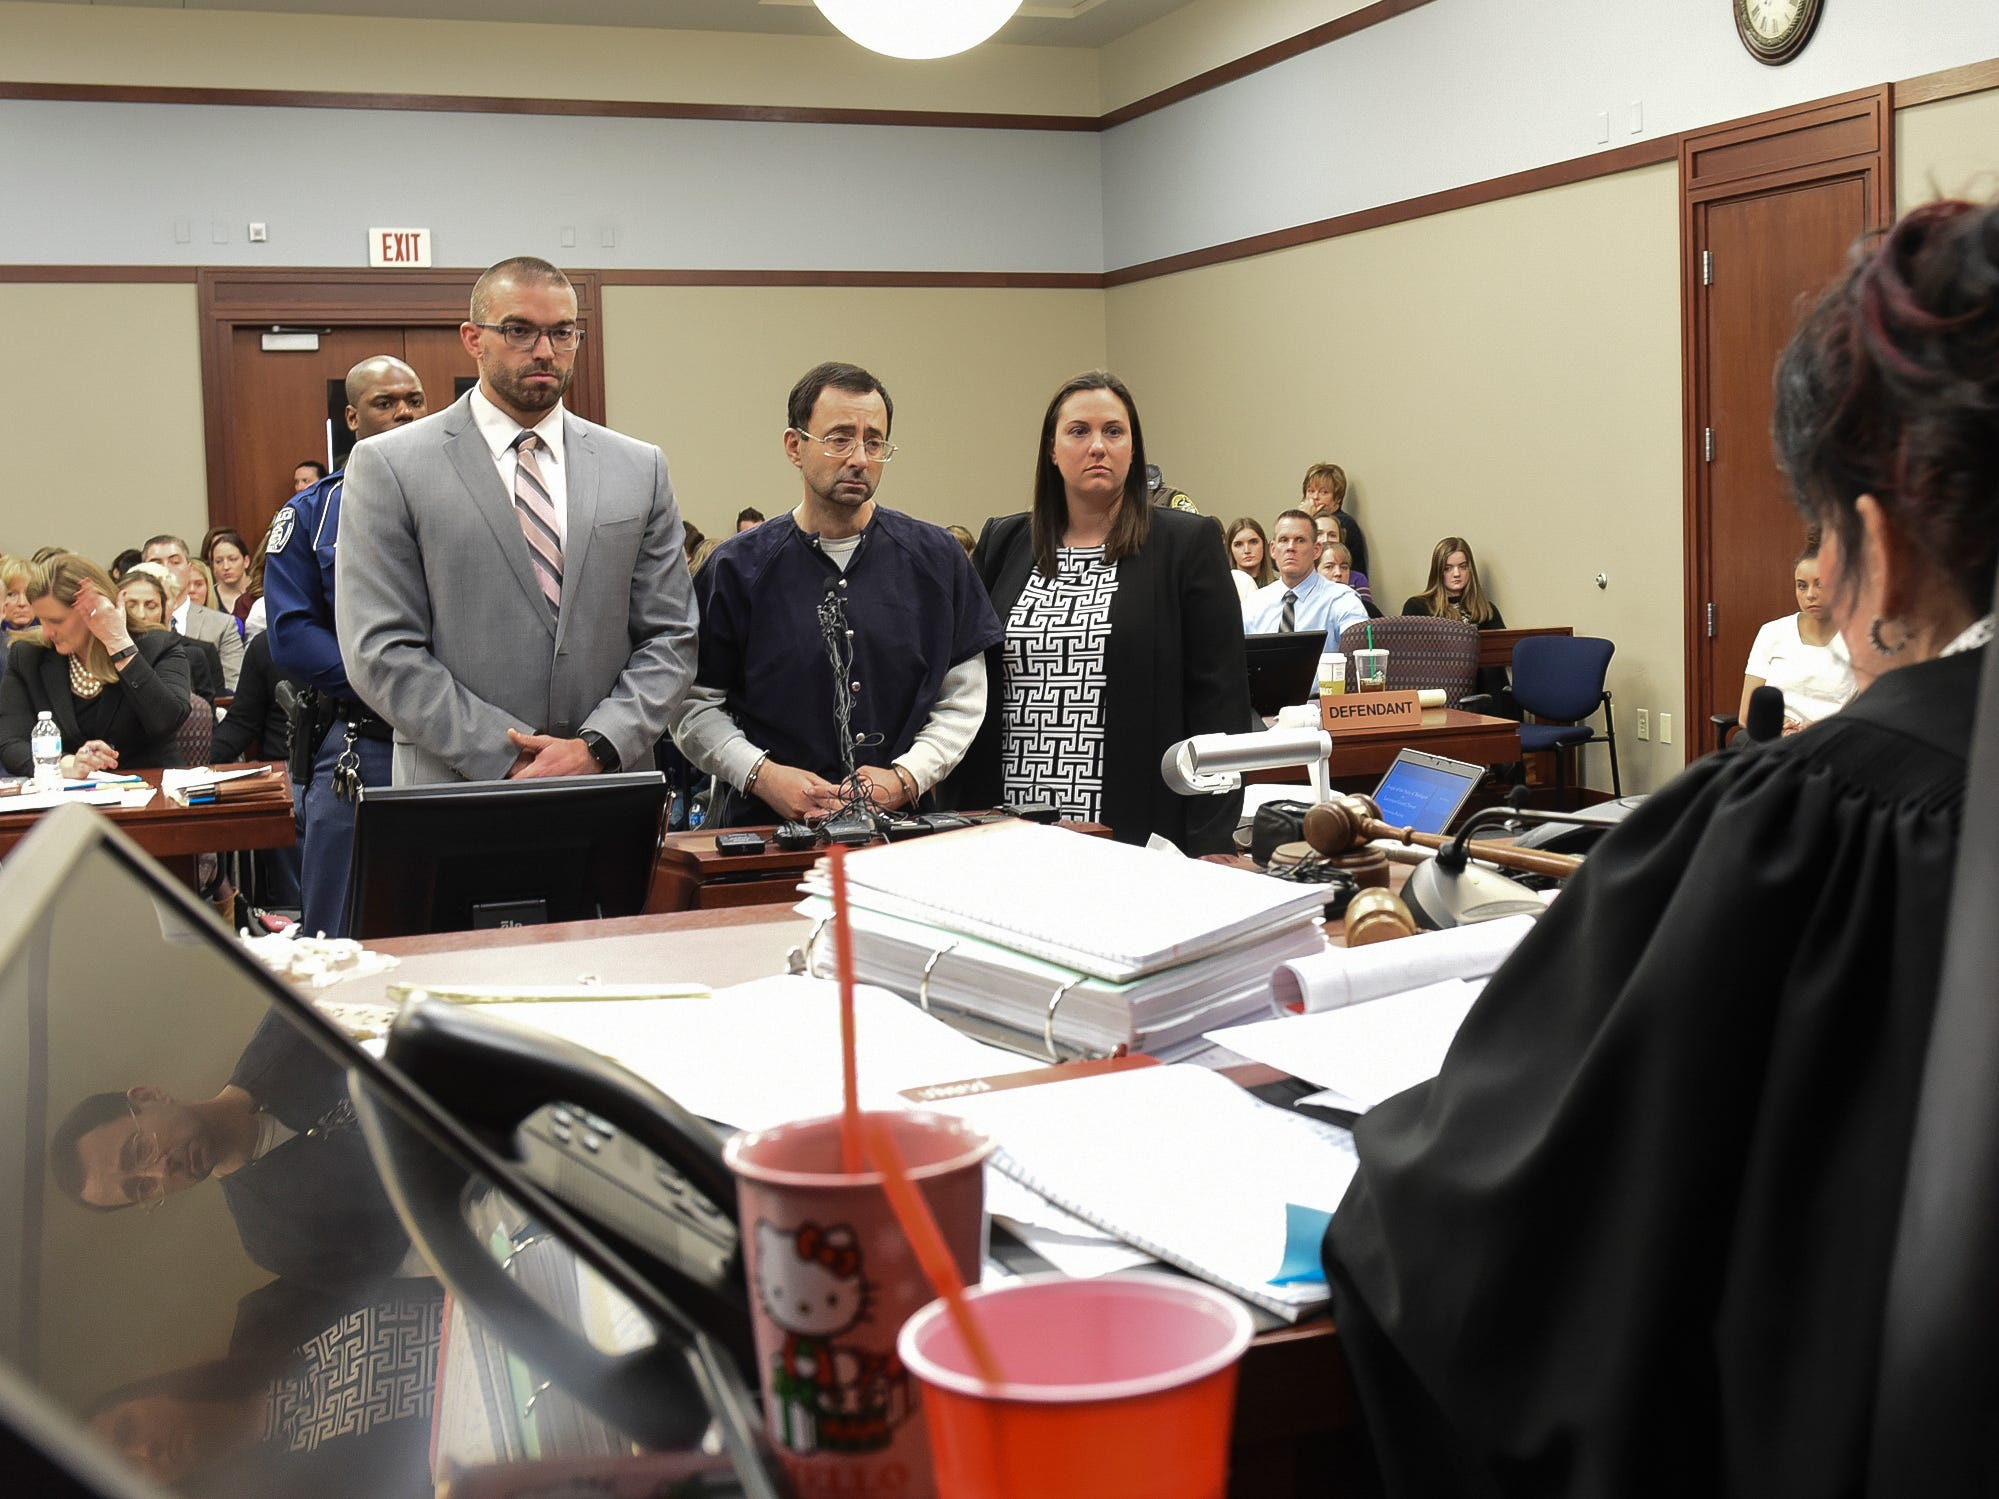 Larry Nassar faces Ingham County Circuit Judge Rosemarie Aquilina moments before his sentencing Wednesday, Jan. 24, 2018, after the seventh day of victim impact statements in Ingham County Circuit Court.  Nassar is flanked by his defense team Matt Newburg and Molly Blythe.